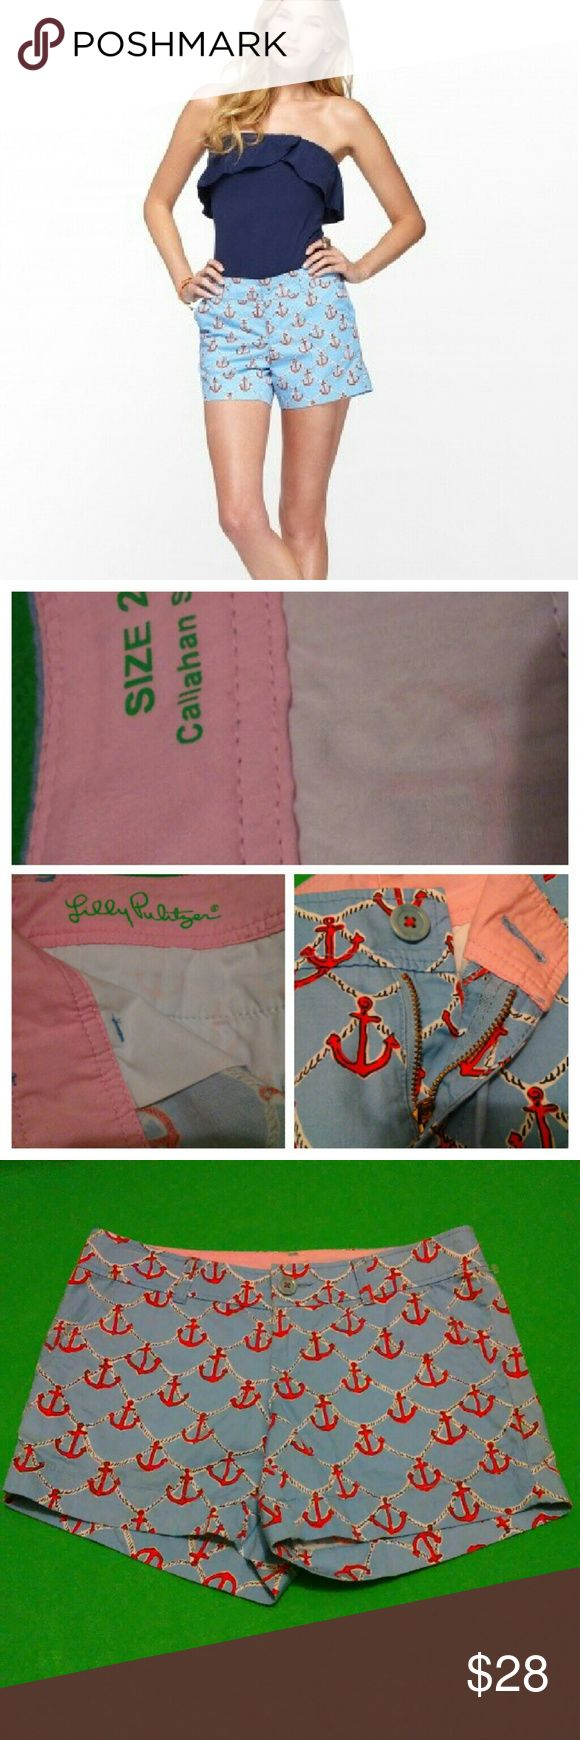 Lilly Pulitzer Callahan Short Anchor print Never worn Size 2 100% cotton Light blue color Lilly Pulitzer Shorts